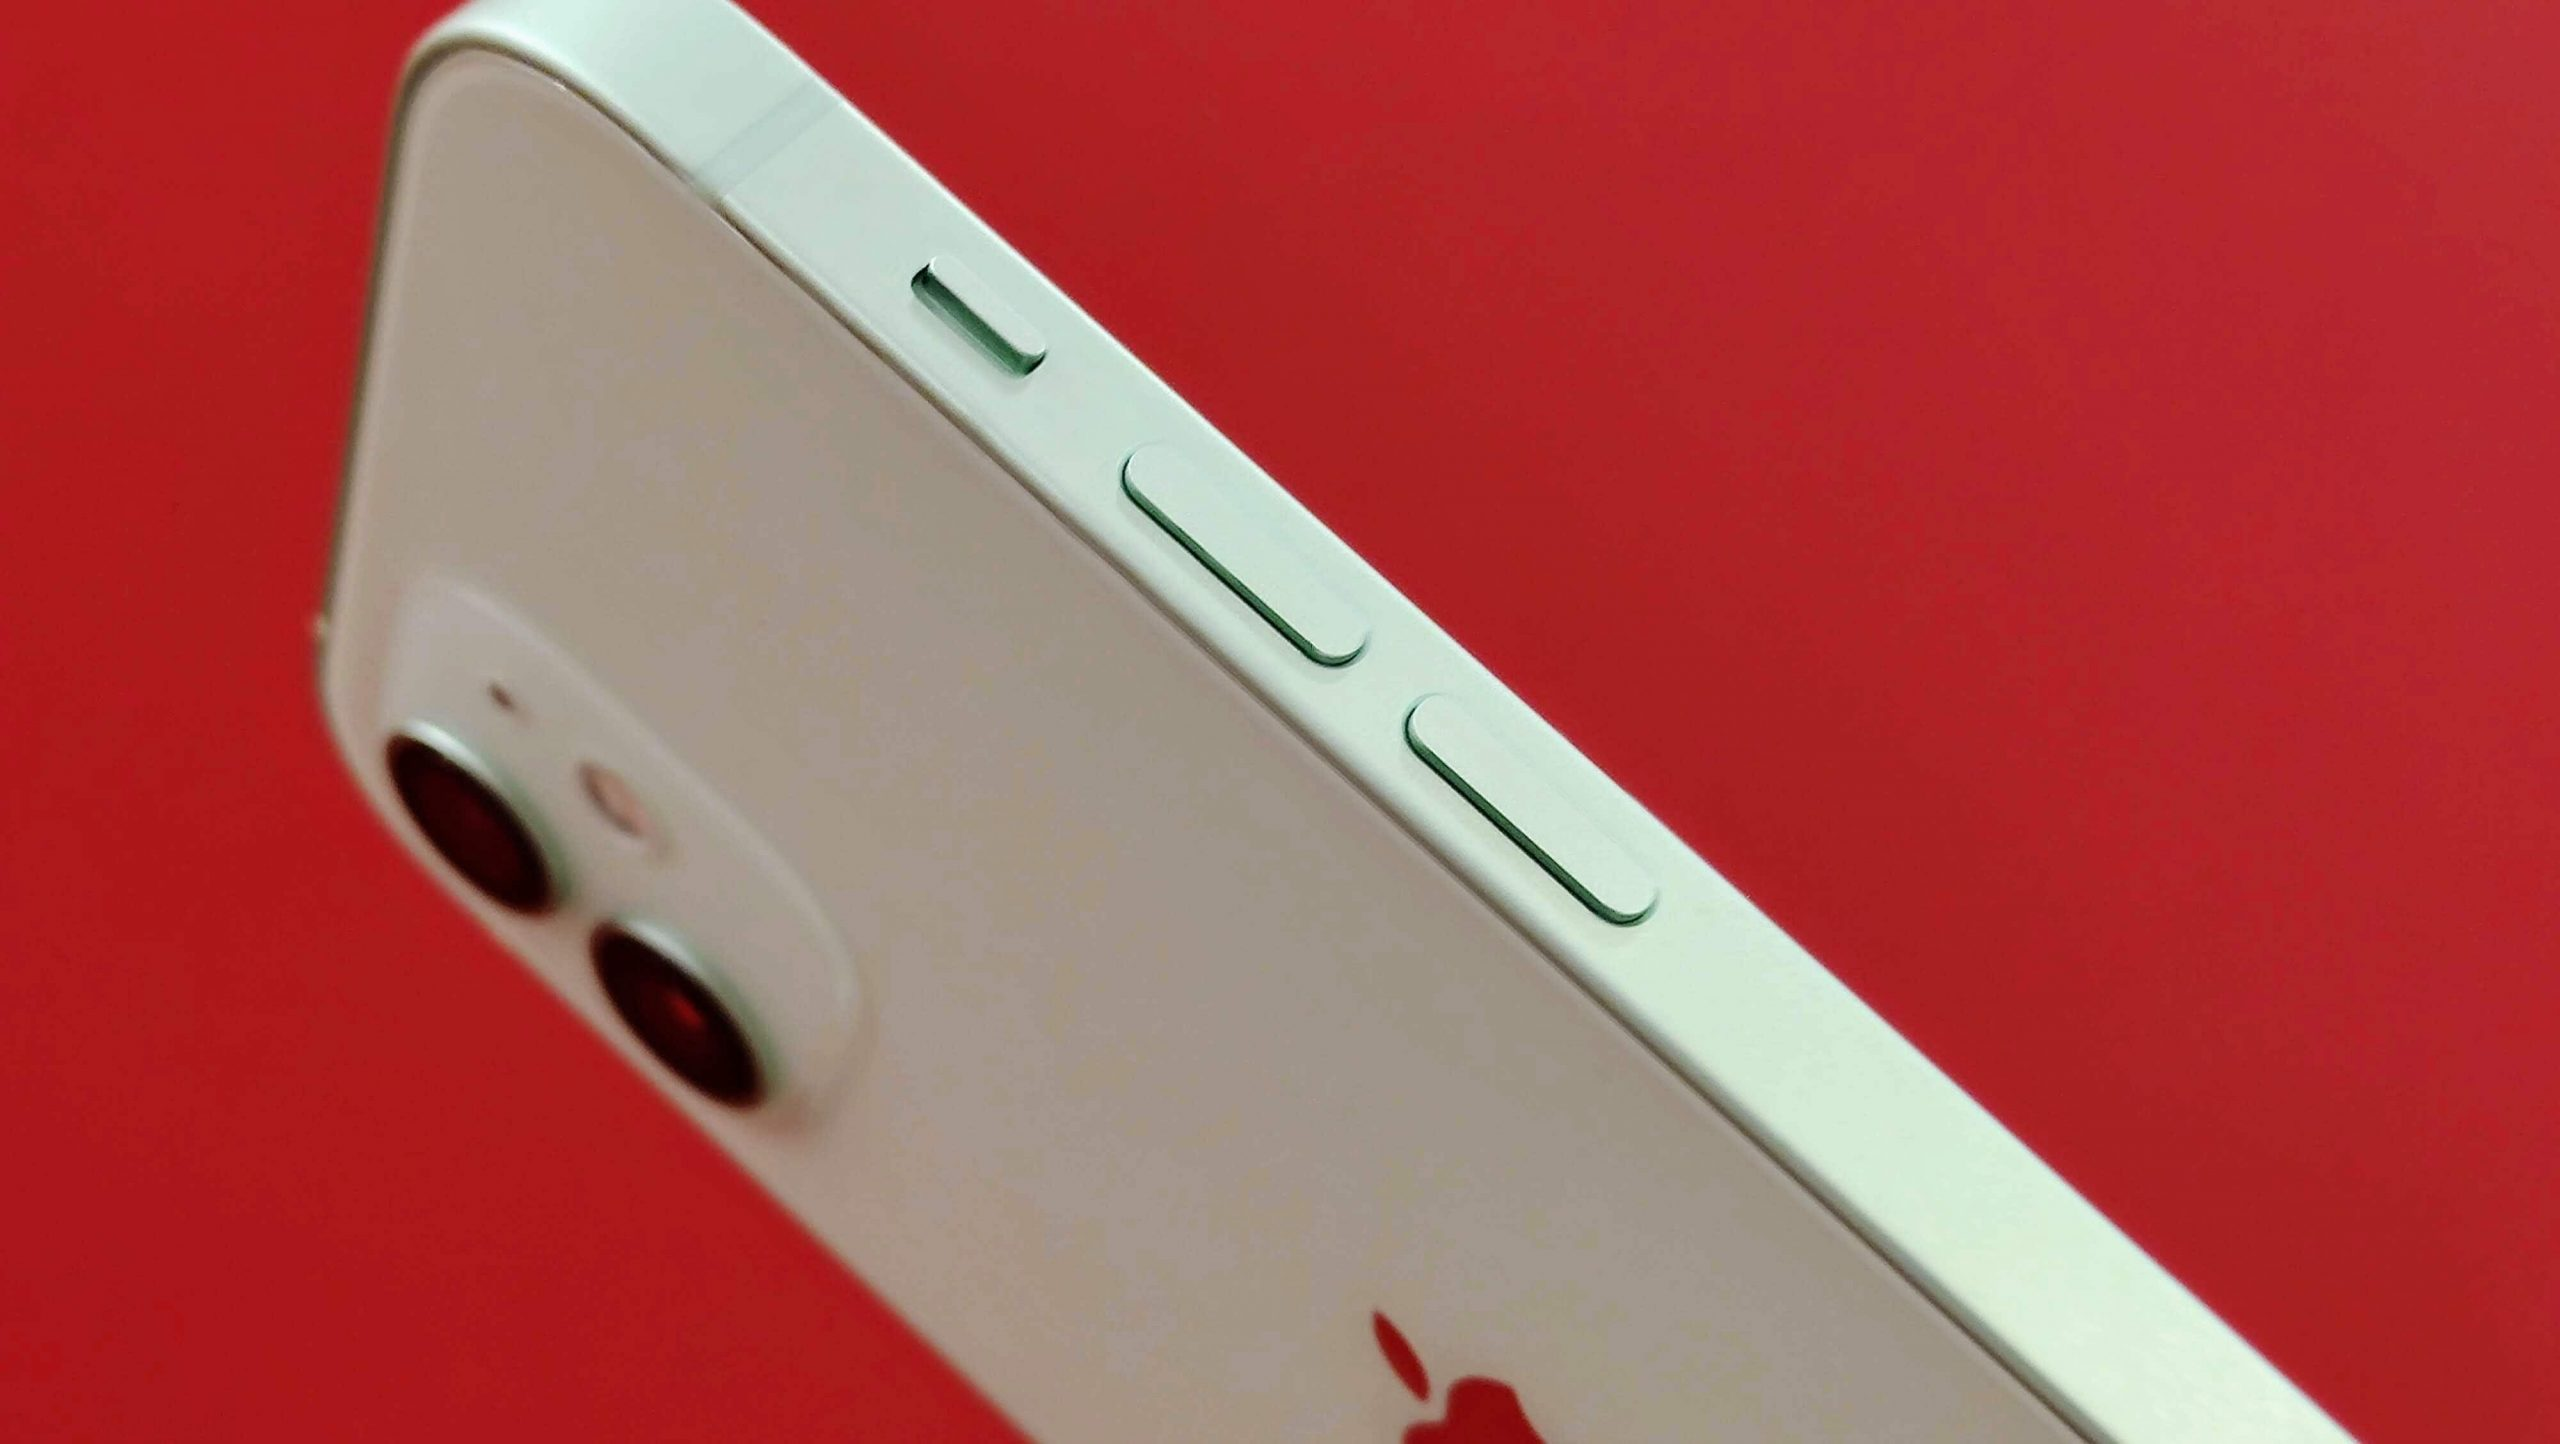 iPhone 12 side buttons